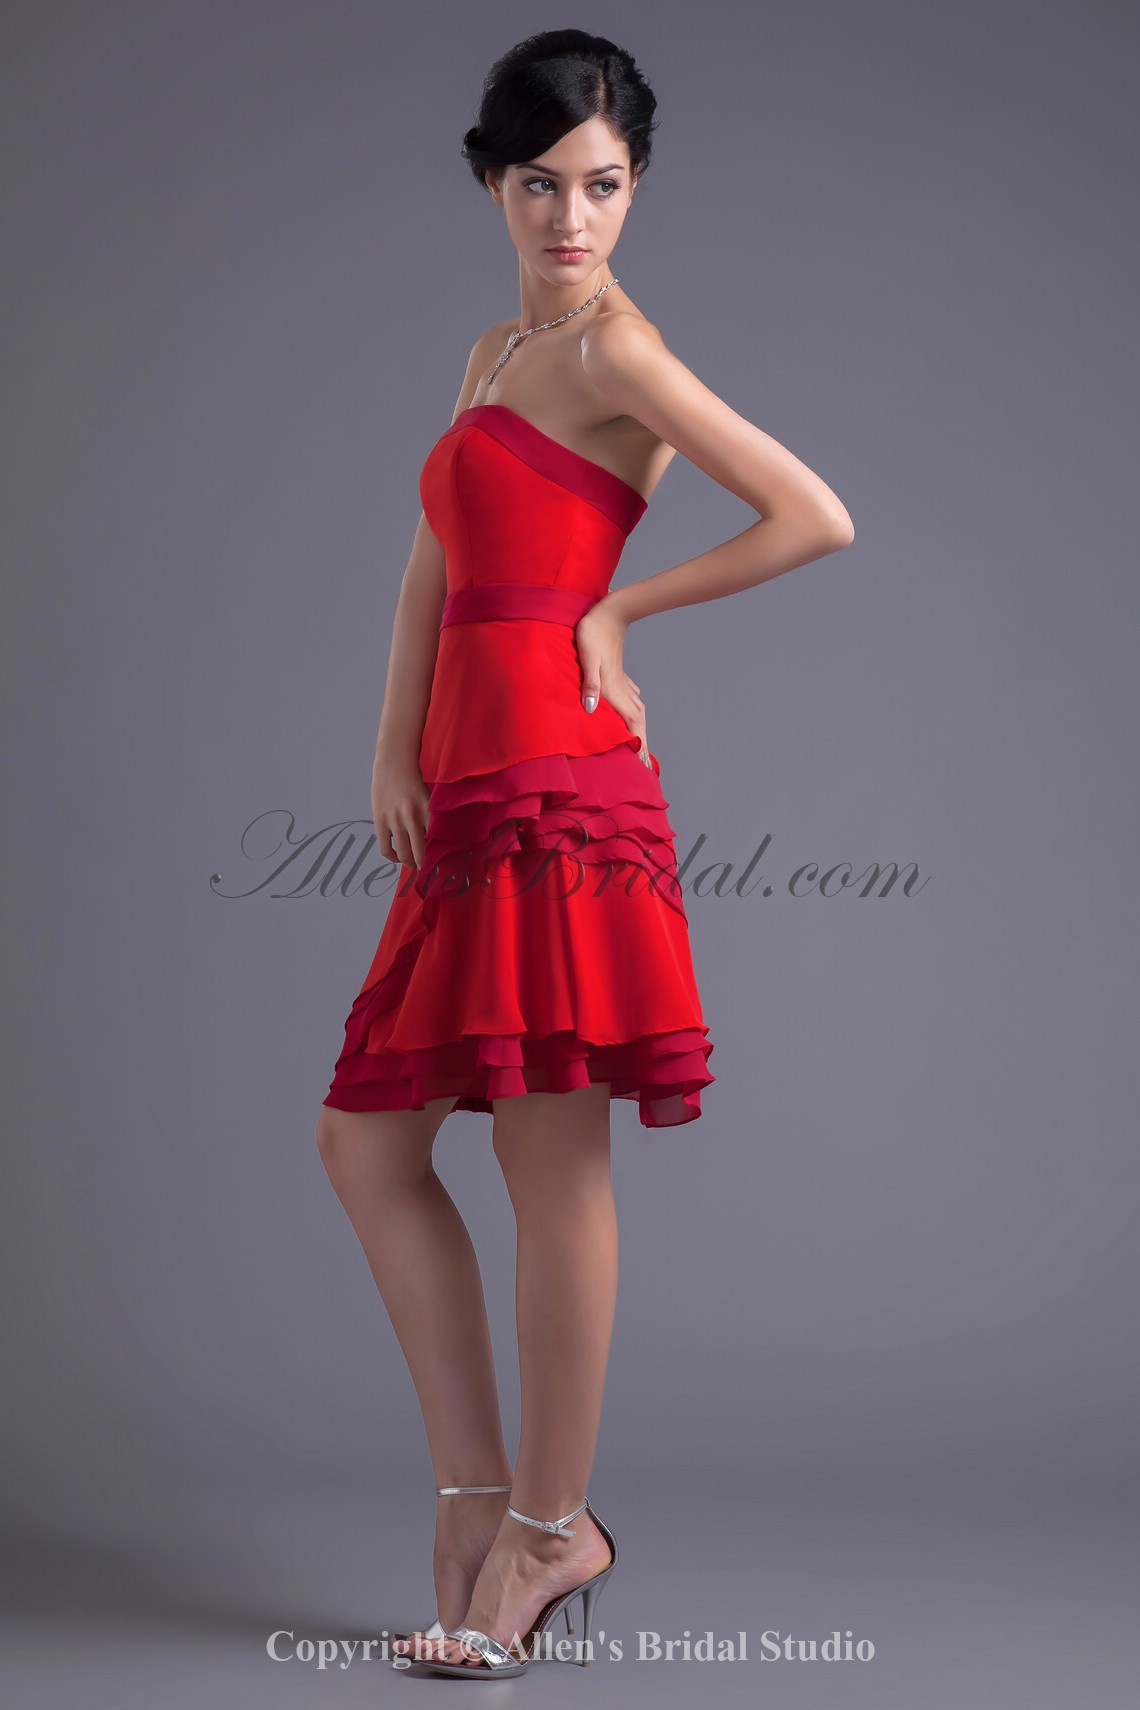 /142-1134/chiffon-strapless-a-line-cocktail-dress.jpg